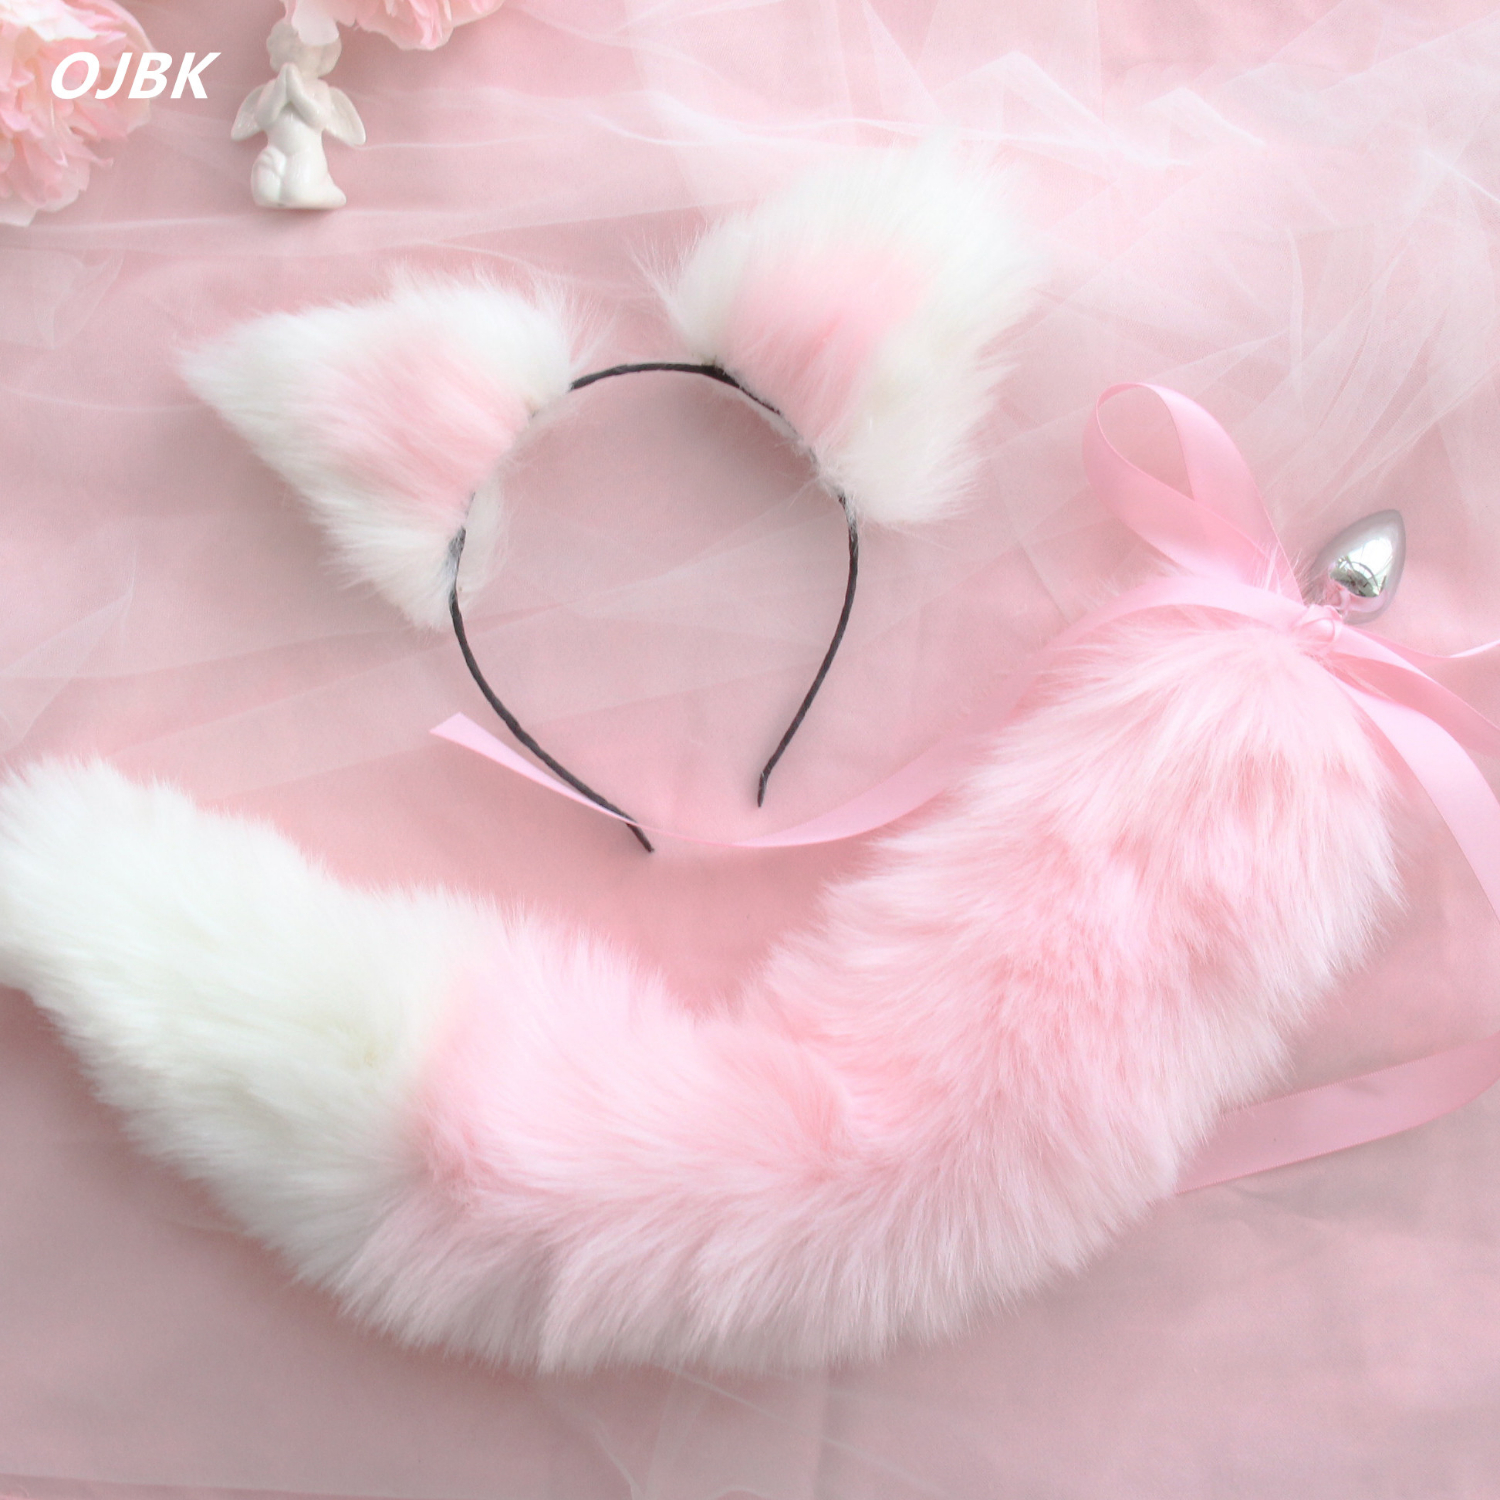 Cute Soft <font><b>Cat</b></font> ears Headbands with Fox Tail Bow Metal Butt Anal Plug Erotic Cosplay Accessories Adult <font><b>Sex</b></font> <font><b>Toys</b></font> for Couples image